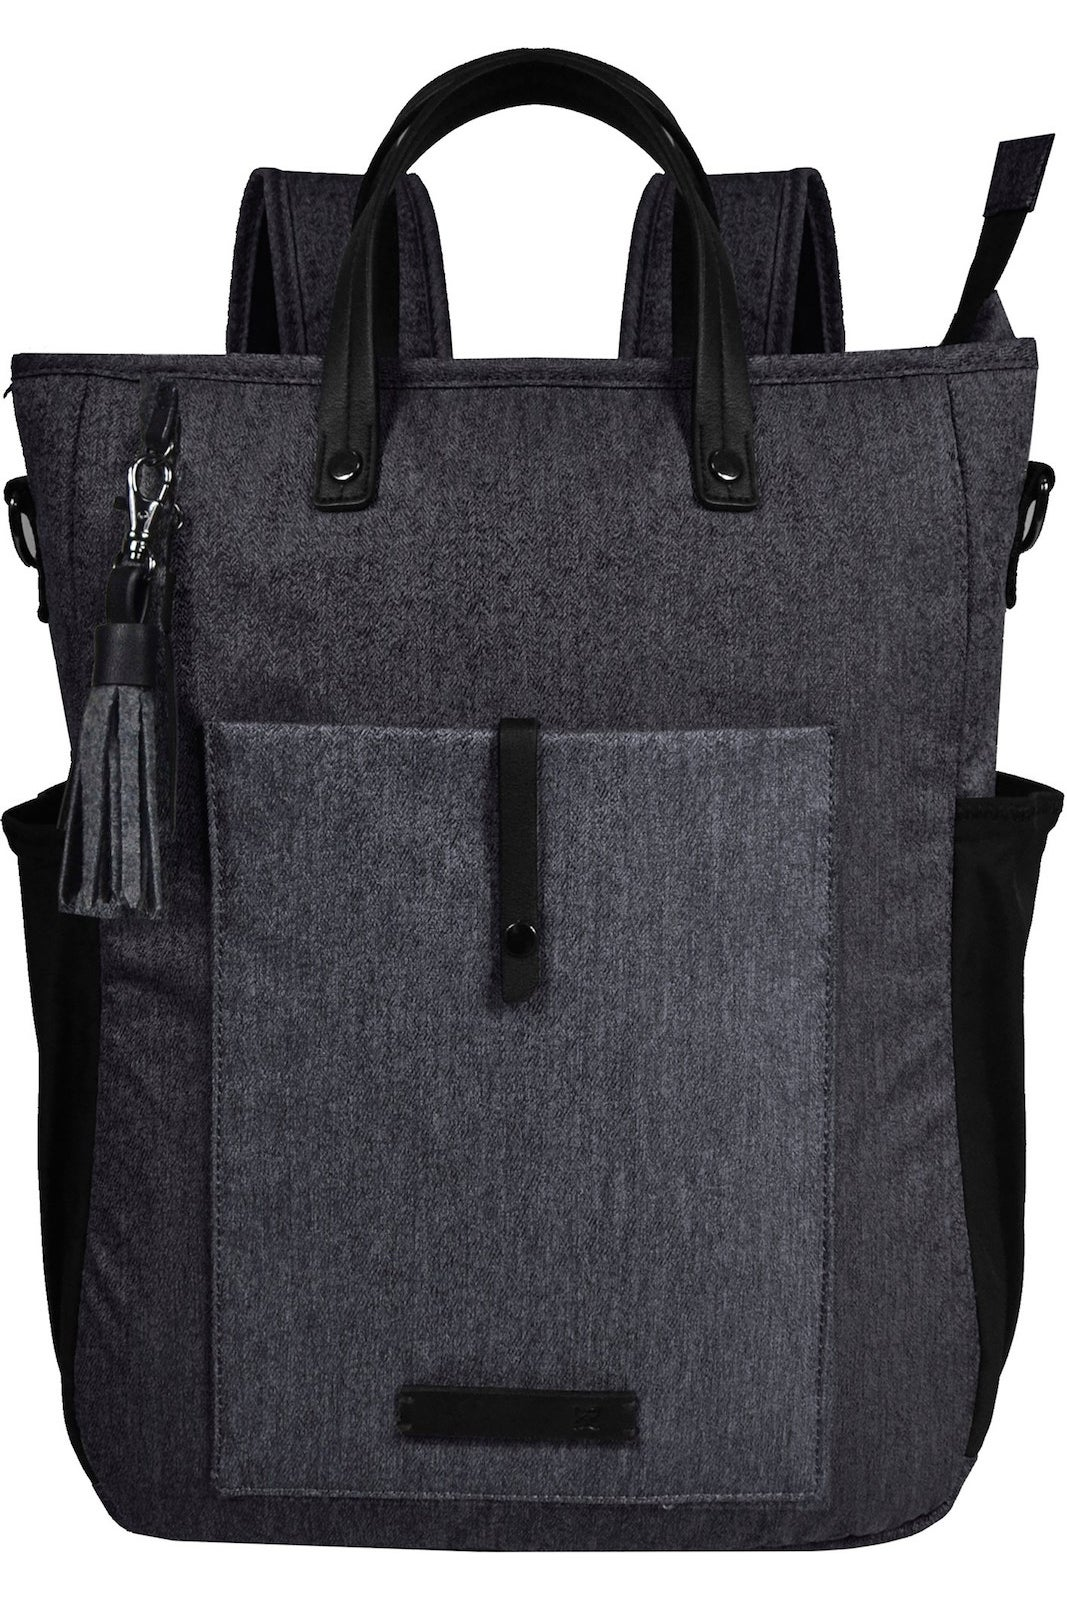 8efbfbed14ea Best Gym Bags For Women - Fitness Totes